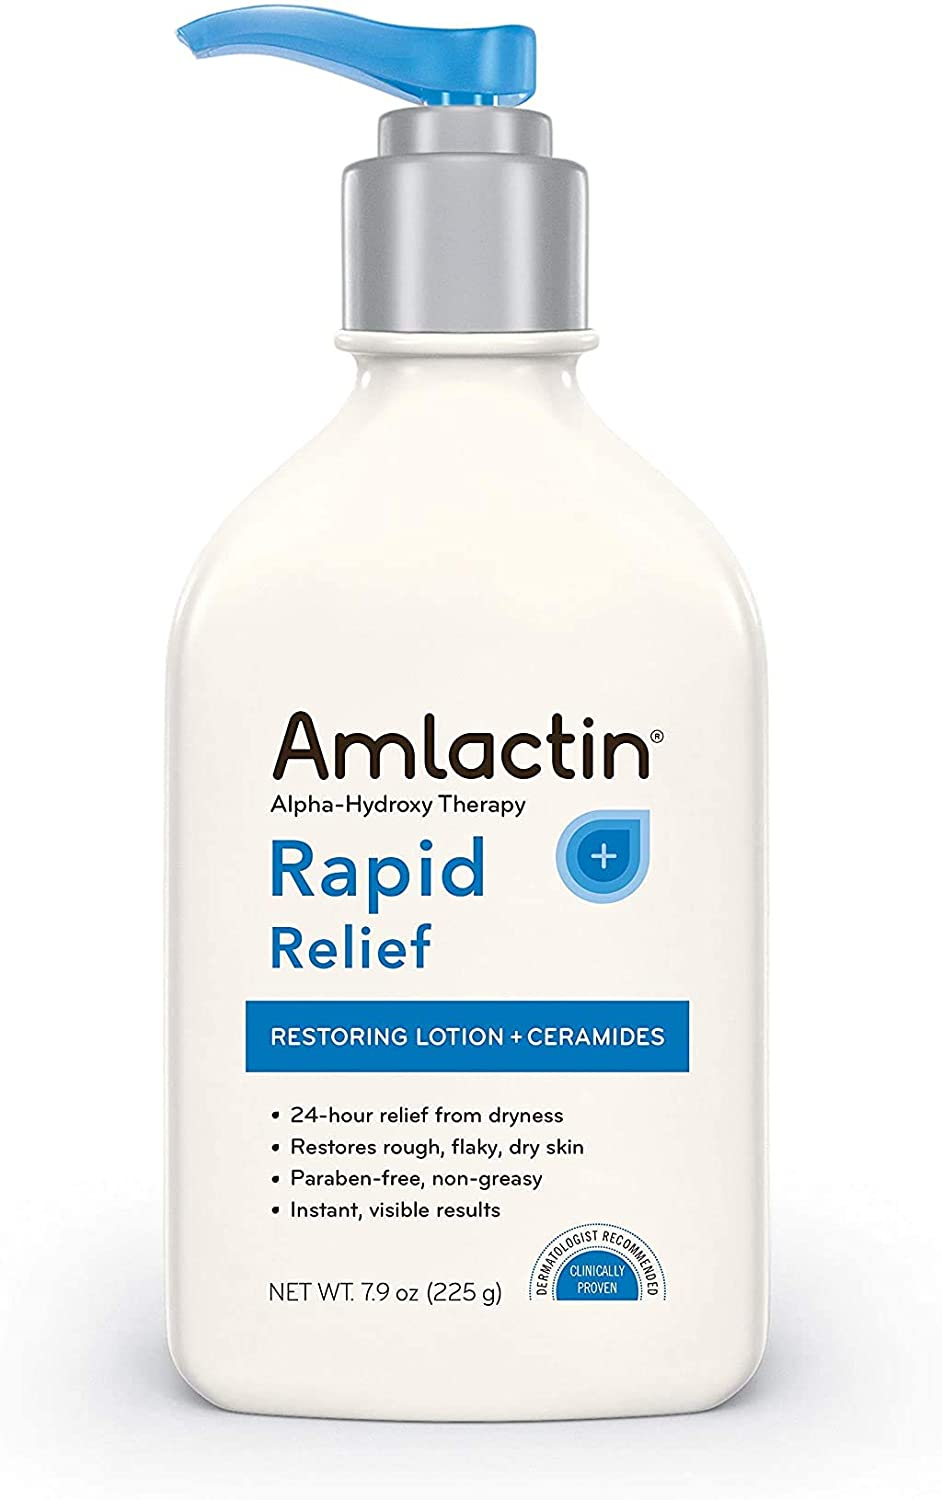 Outlet sale feature NEW before selling ☆ AmLactin Alpha Hydroxy Therapy Rapid Lotion Relief Restoring C